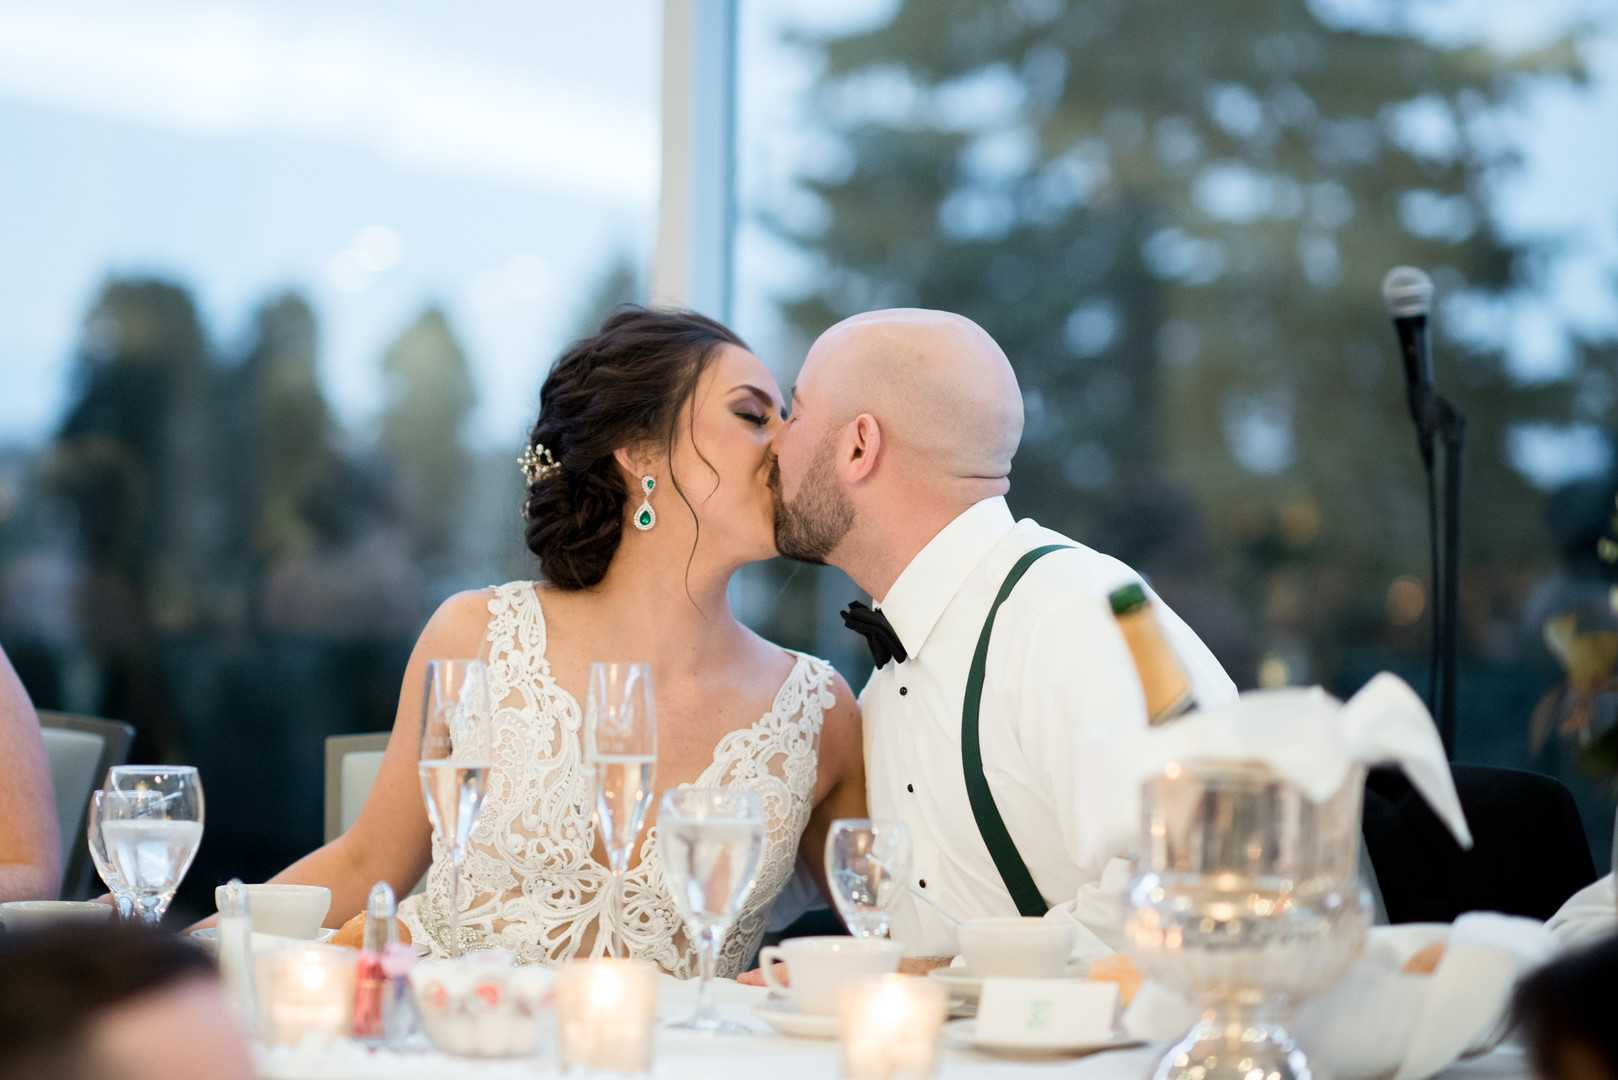 Bride and Groom | A Stunning St. Patrick's Day Wedding | Kate Aspen